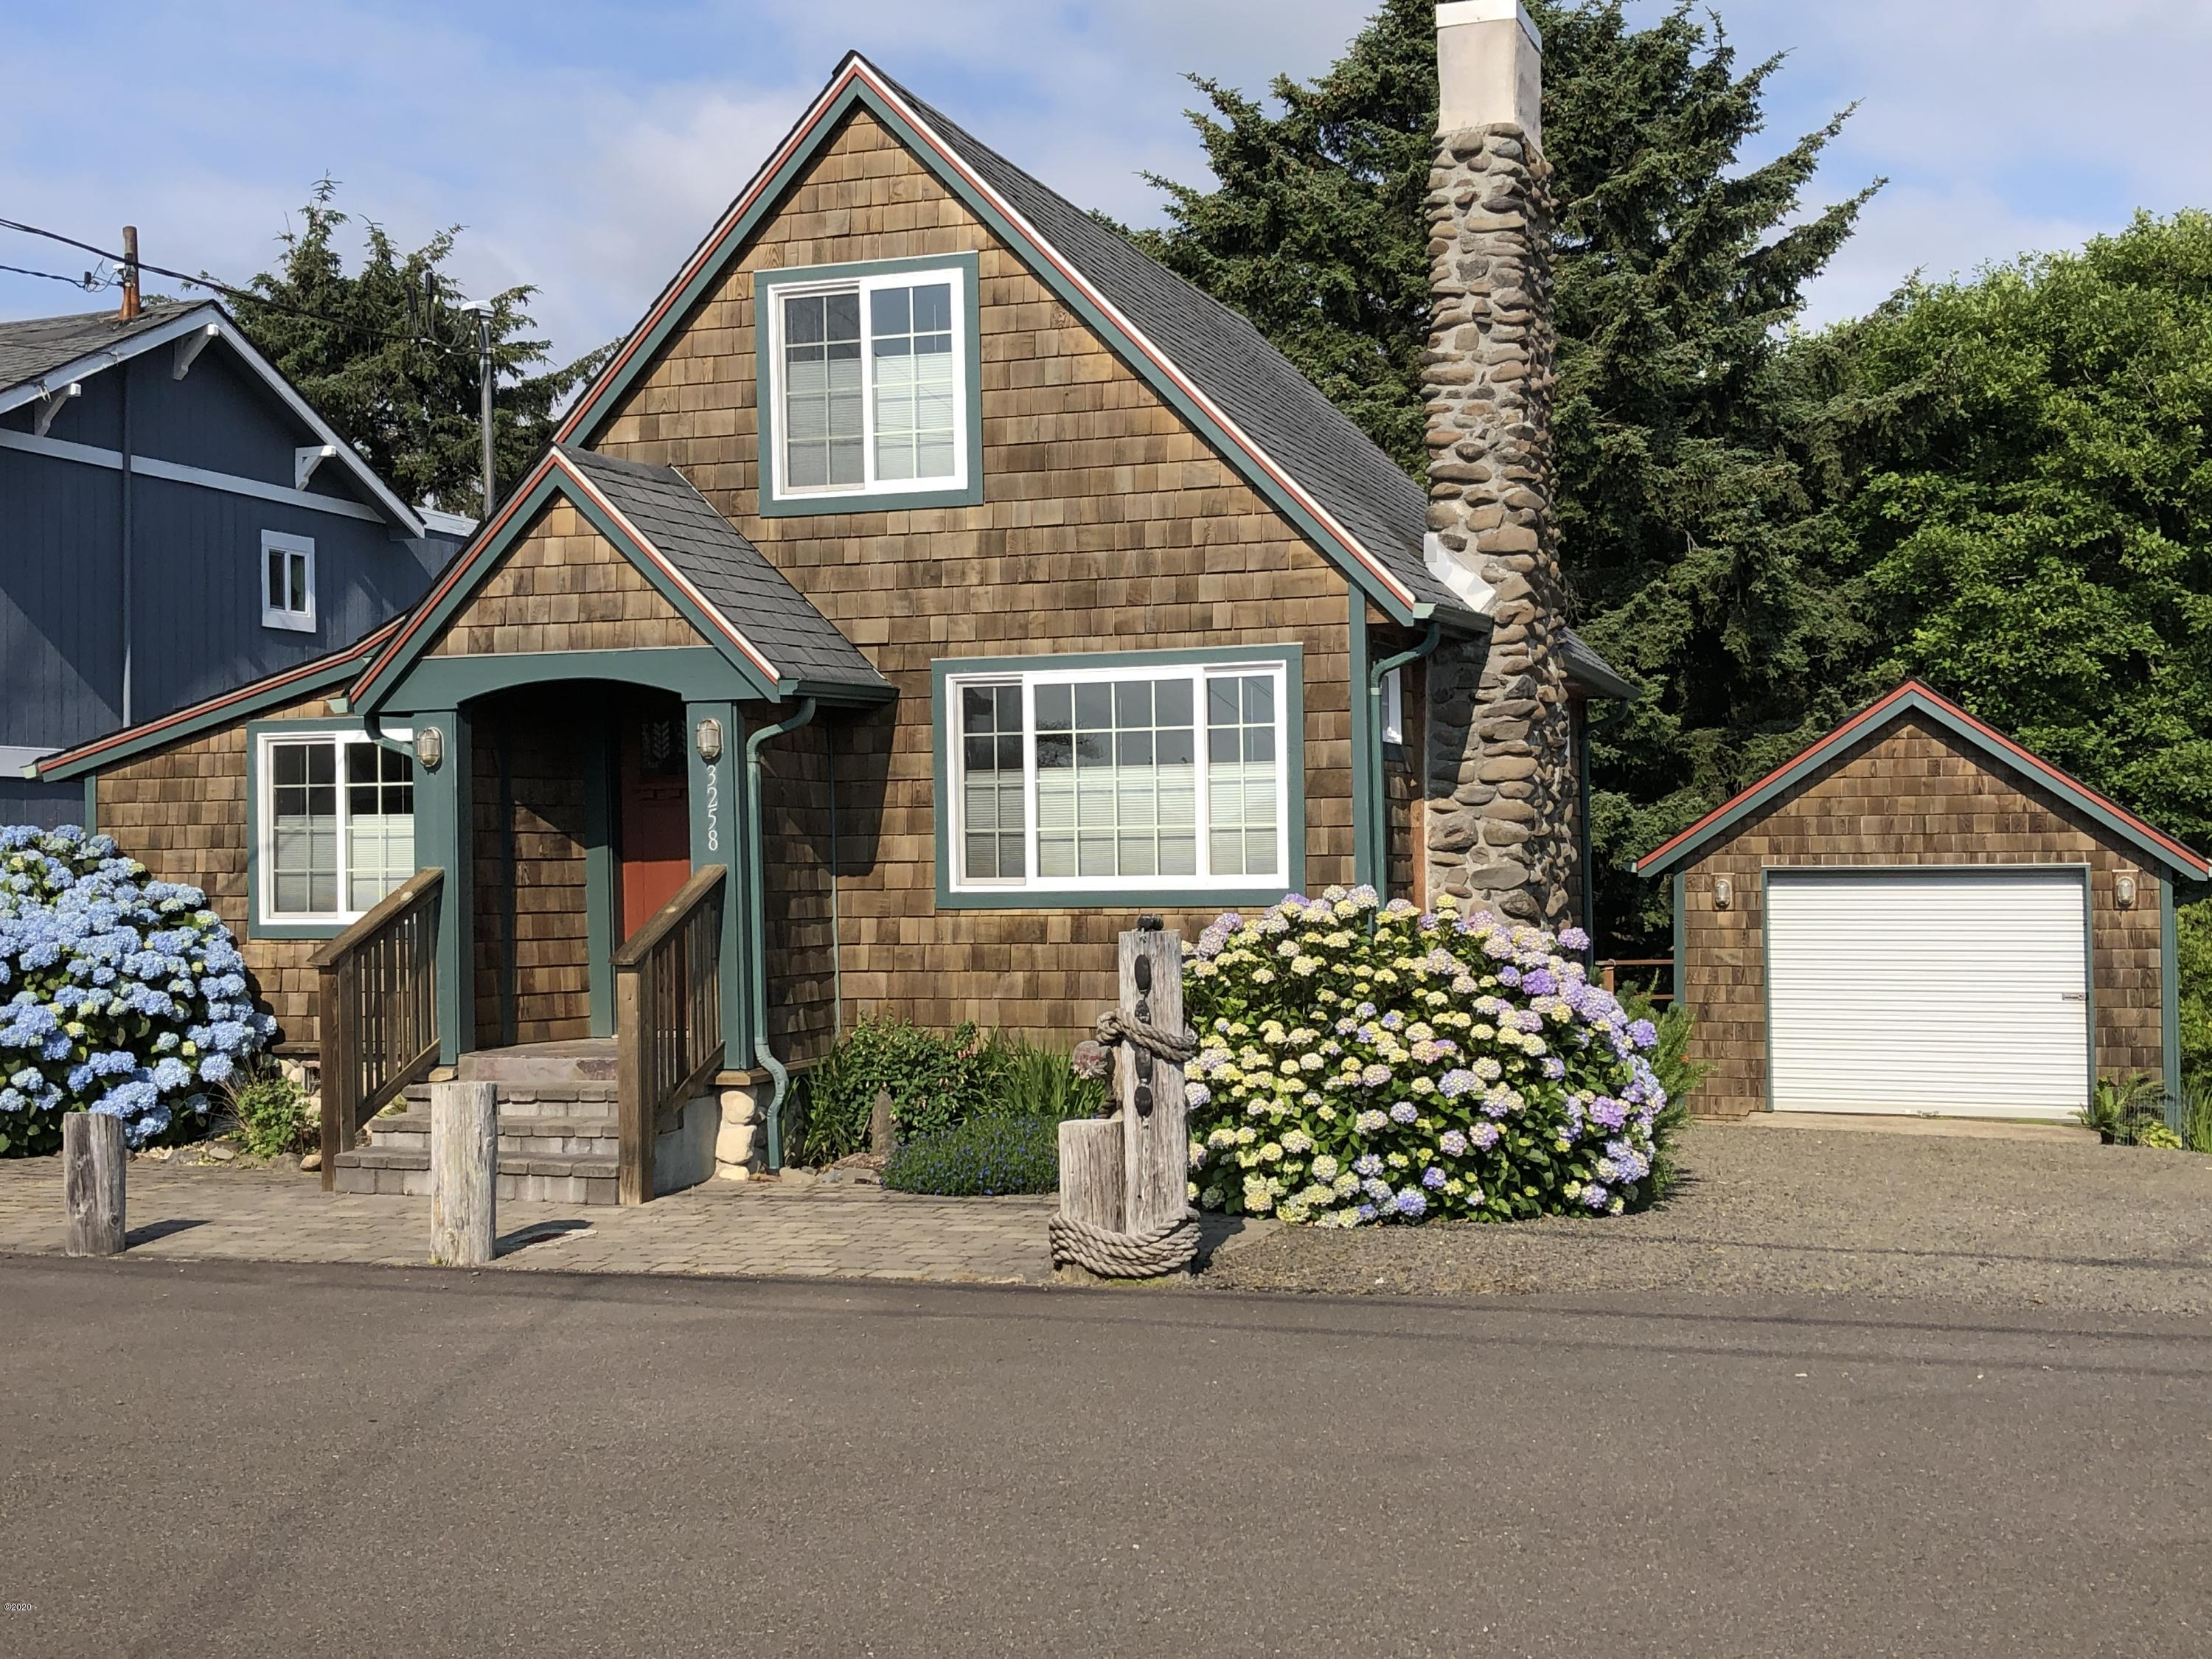 3258 SW Beach Ave, Lincoln City, OR 97367 - Front of the house